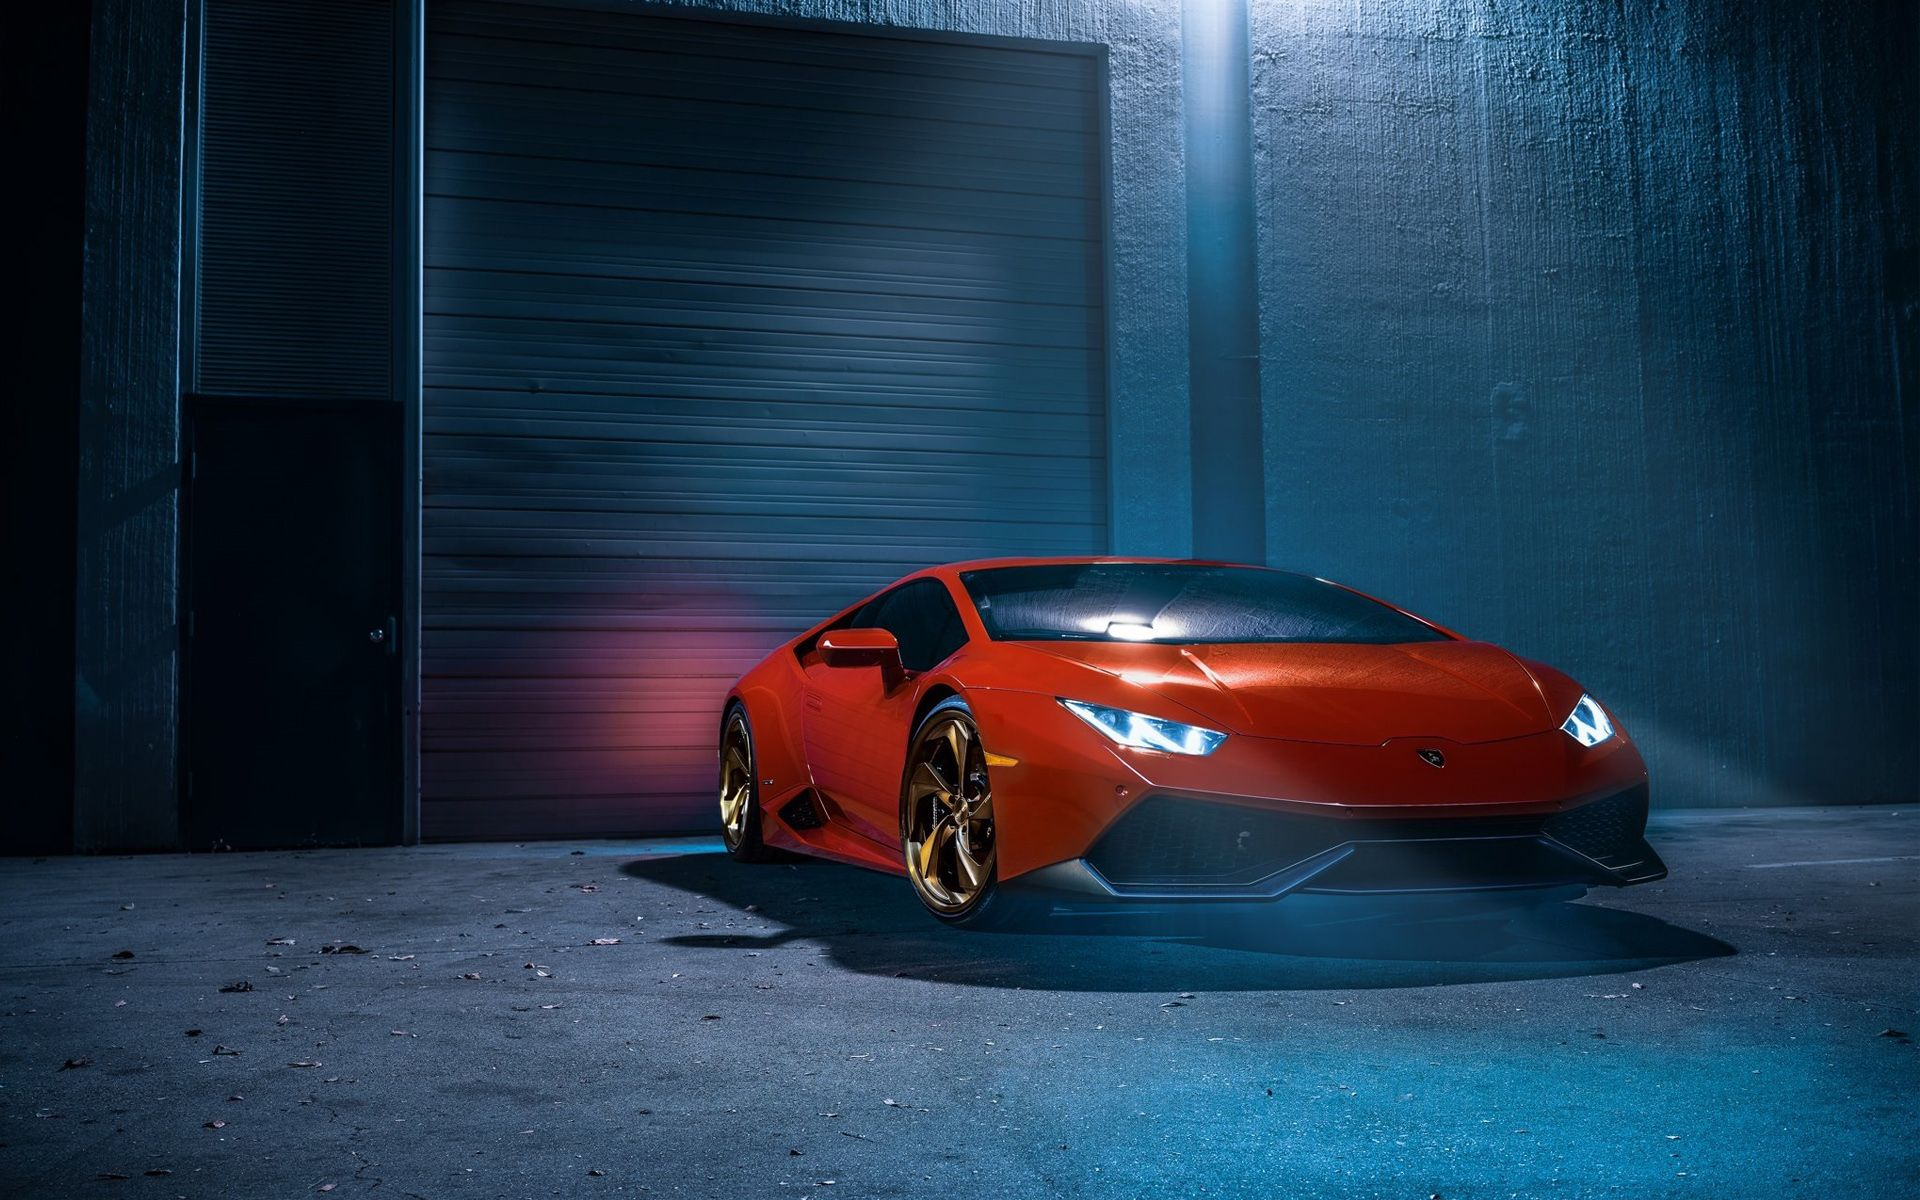 ADV Lamborghini Aventador Wallpaper HD Car Wallpapers 1920×1200 Aventador  Wallpaper (42 Wallpapers) | Adorable Wallpapers | Wallpapers | Pinterest ...